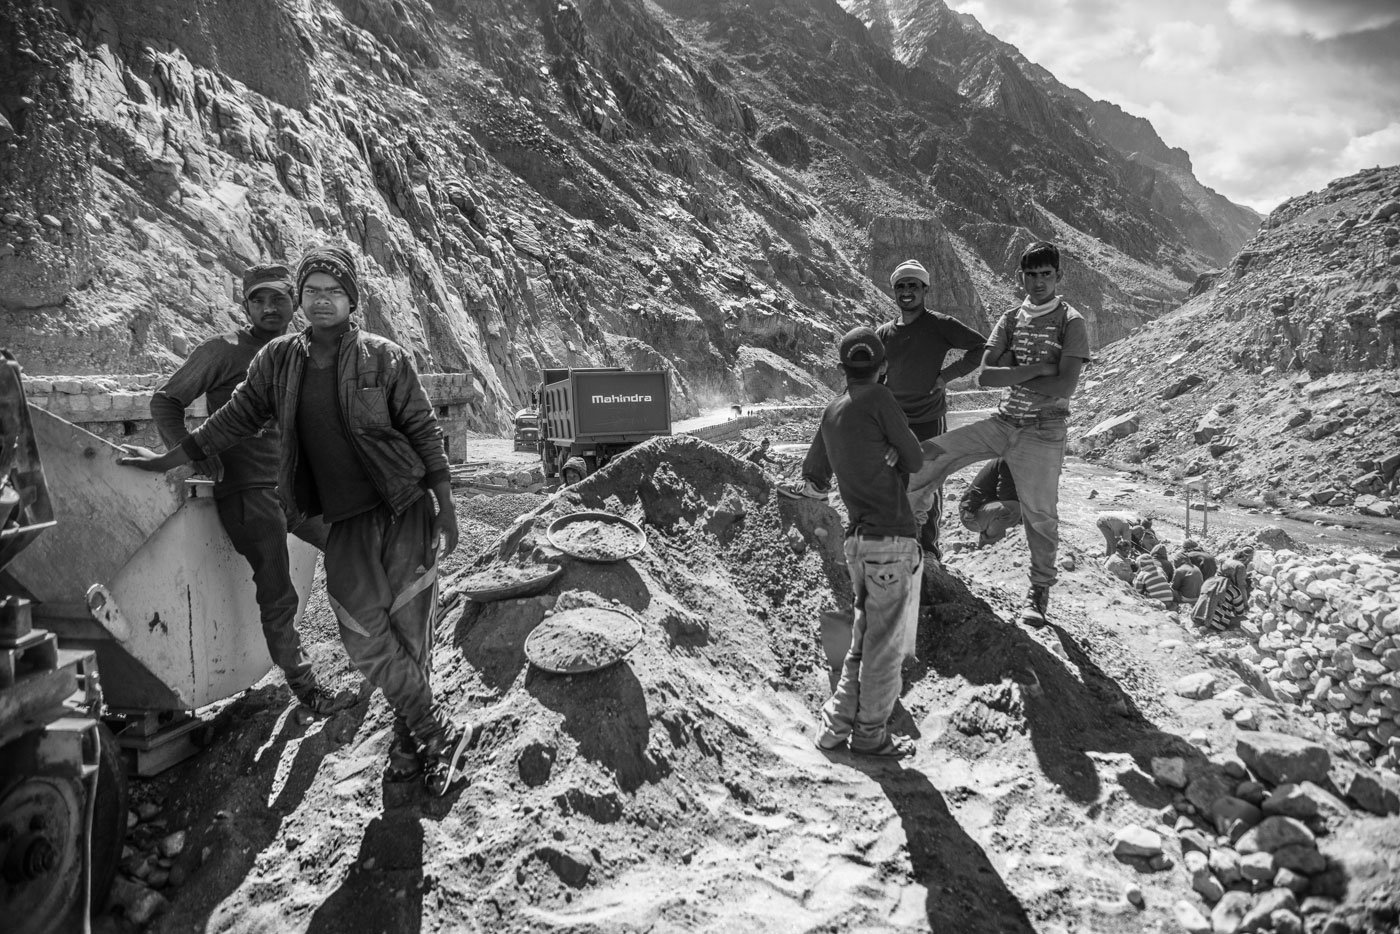 Will All-Weather Connectivity and More Tourists Help Ladakh?